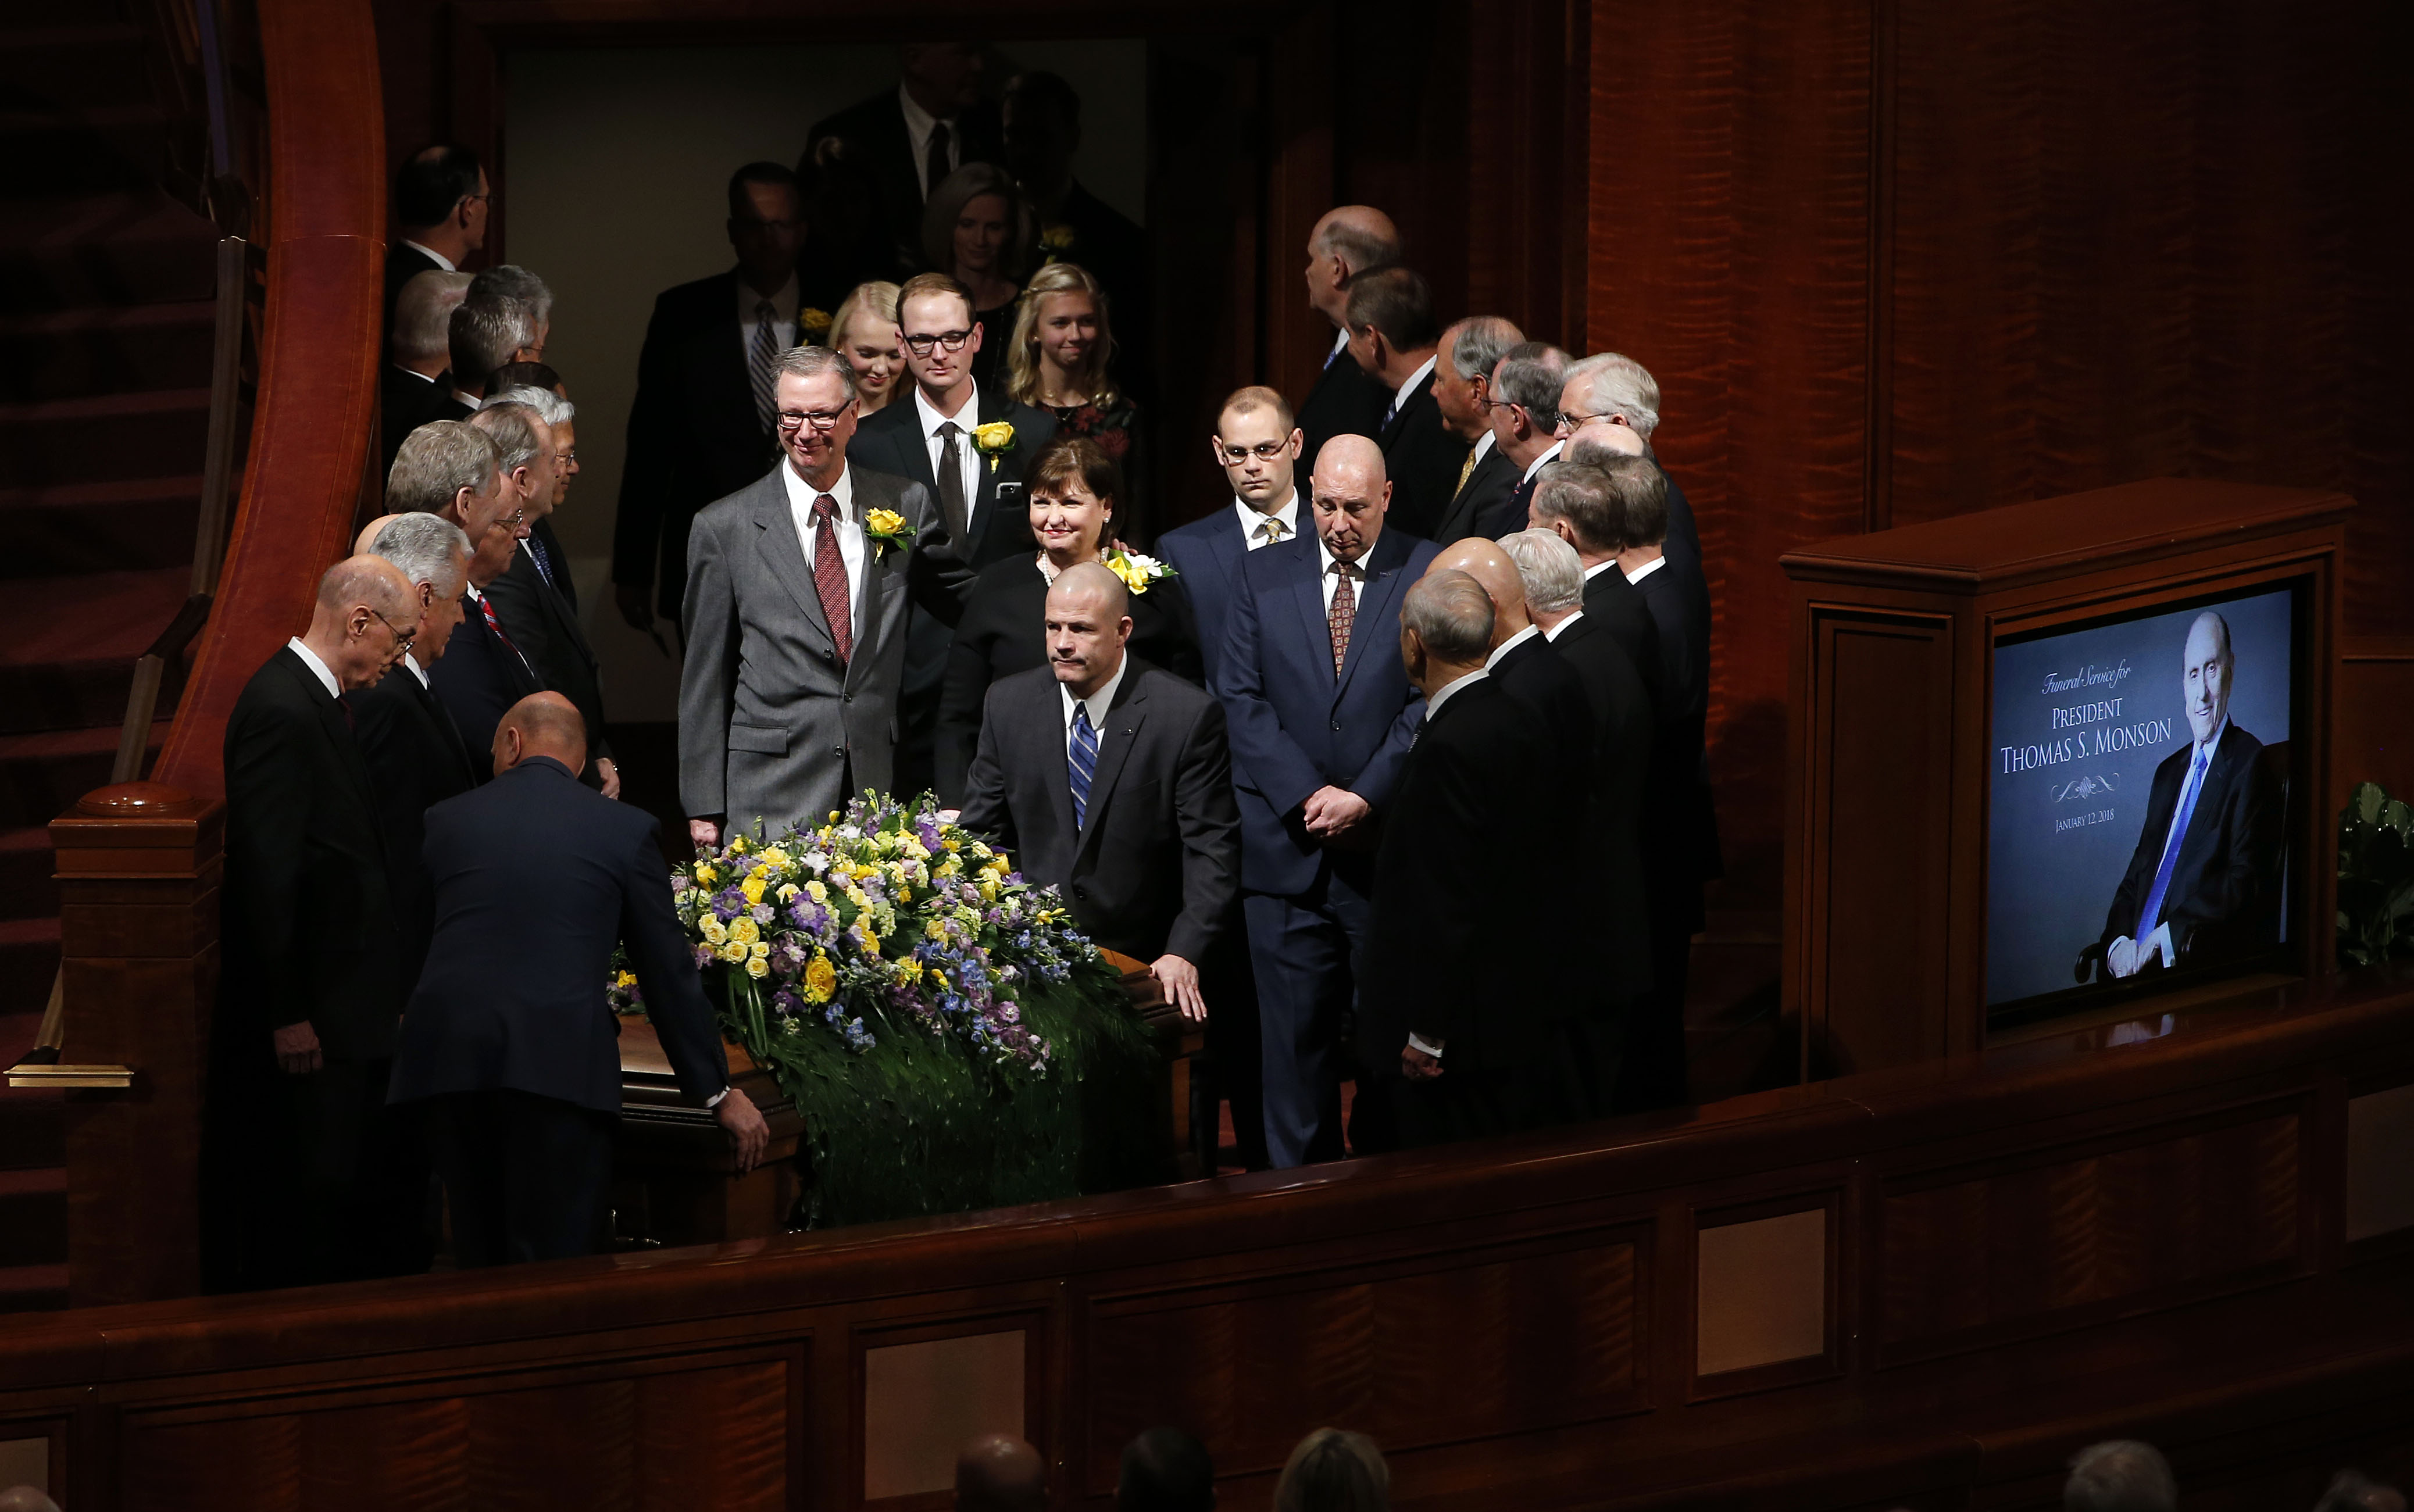 Church President Thomas S. Monson's casket is brought into the Conference Center in Salt Lake City on Friday, Jan. 12, 2018.